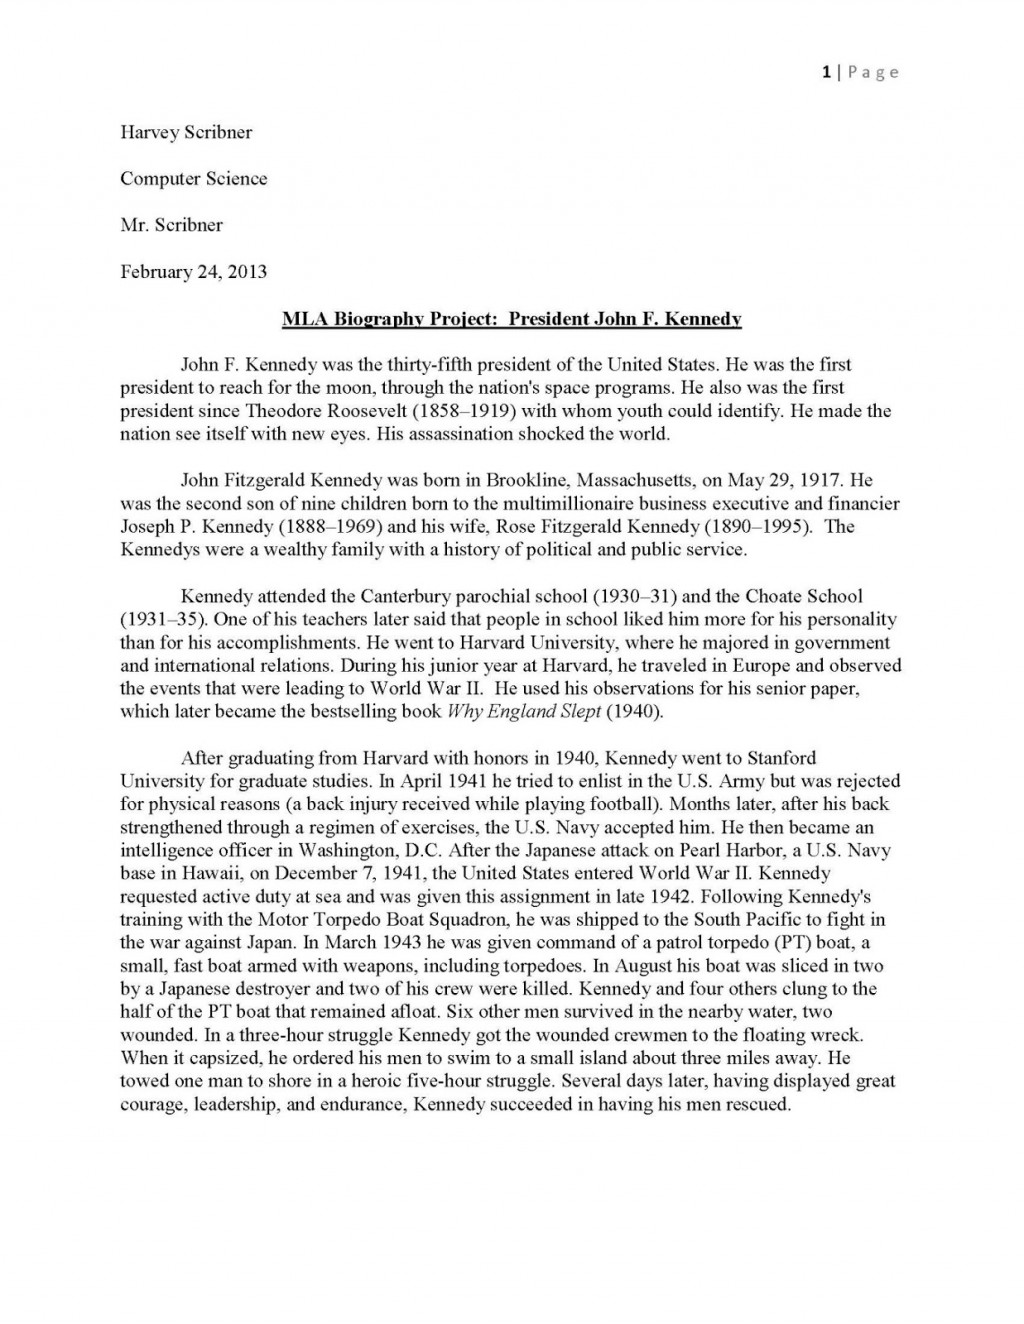 012 Jfkmlashortformbiographyreportexample Page 1 Essay Example Unique Autobiography Of About Yourself Tagalog Bio For Students Large